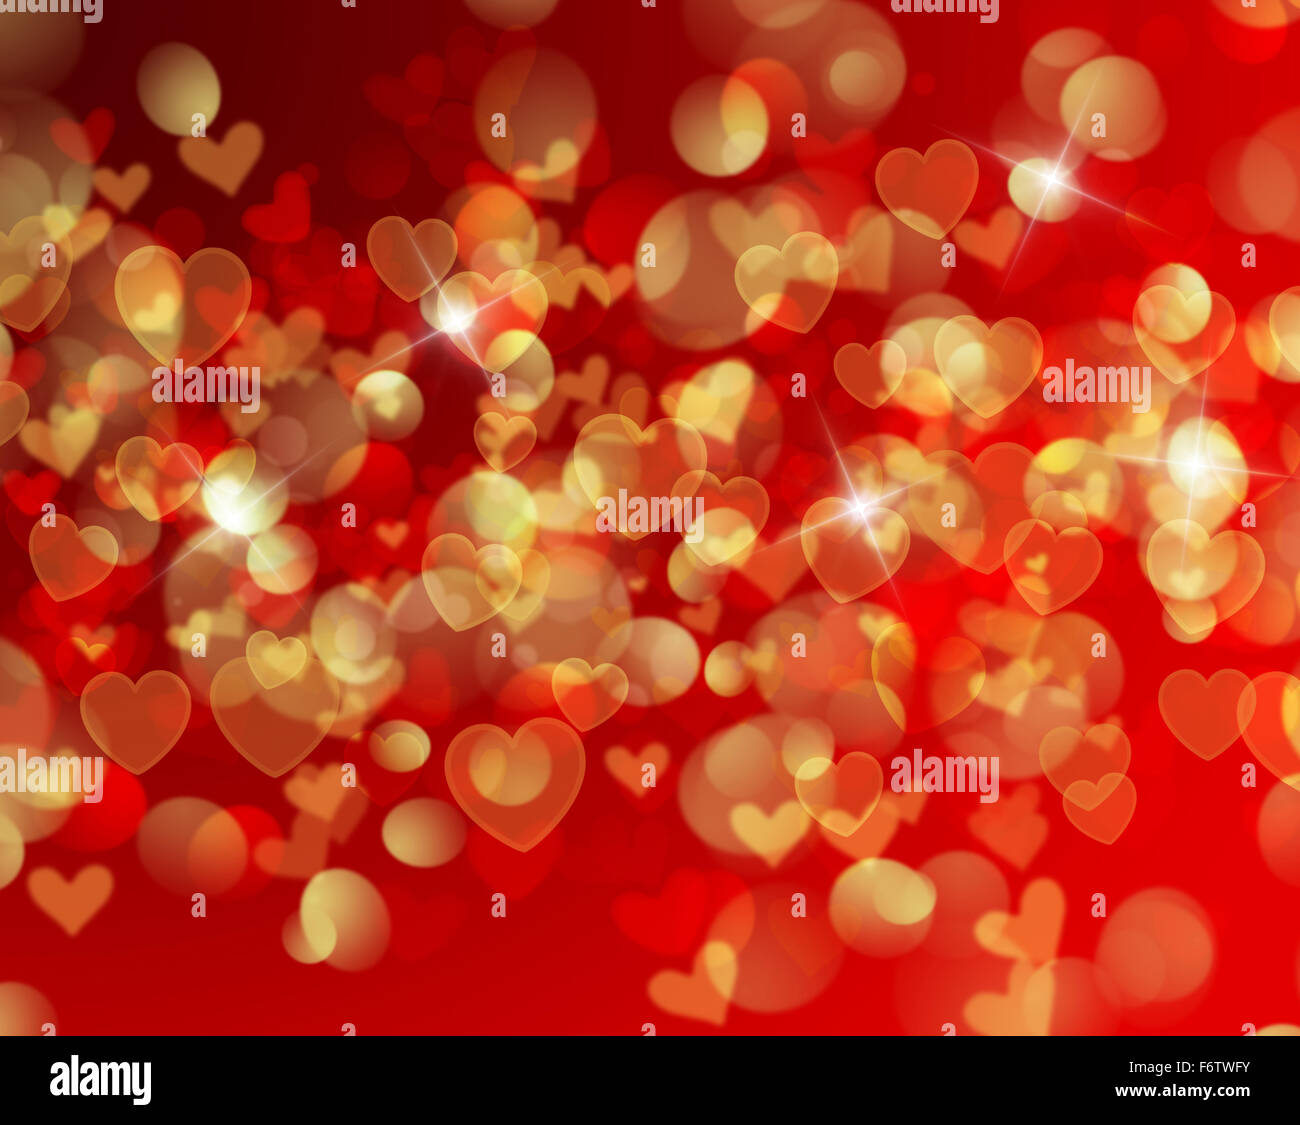 valentines day background with heart shaped bokeh lights